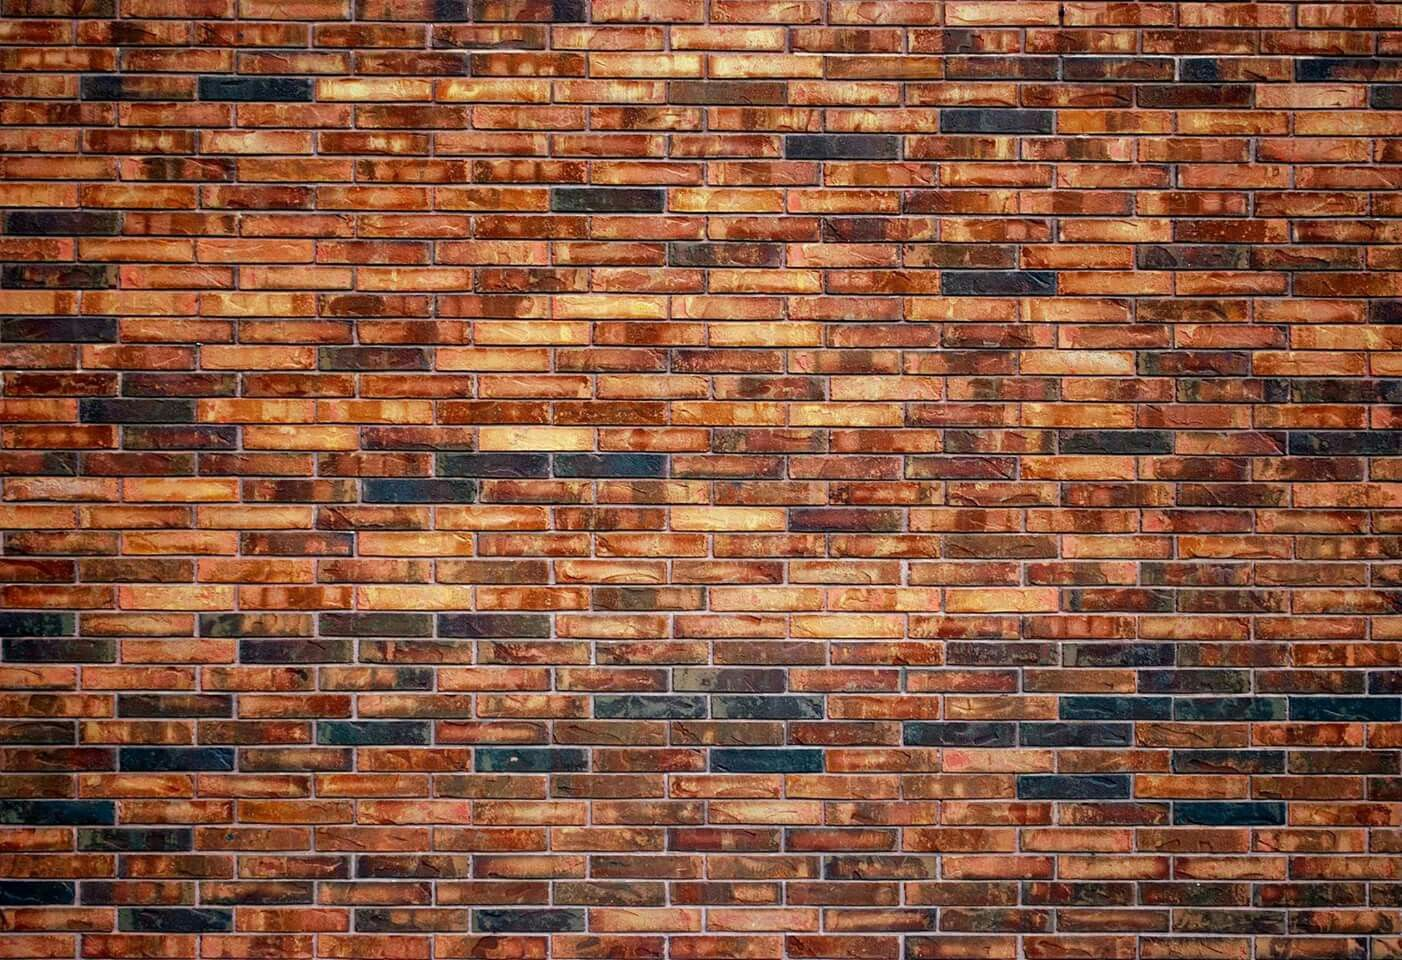 Exposed Brick Wall Brick Wall Mapping Textures Exposed Brick Type Of Stones